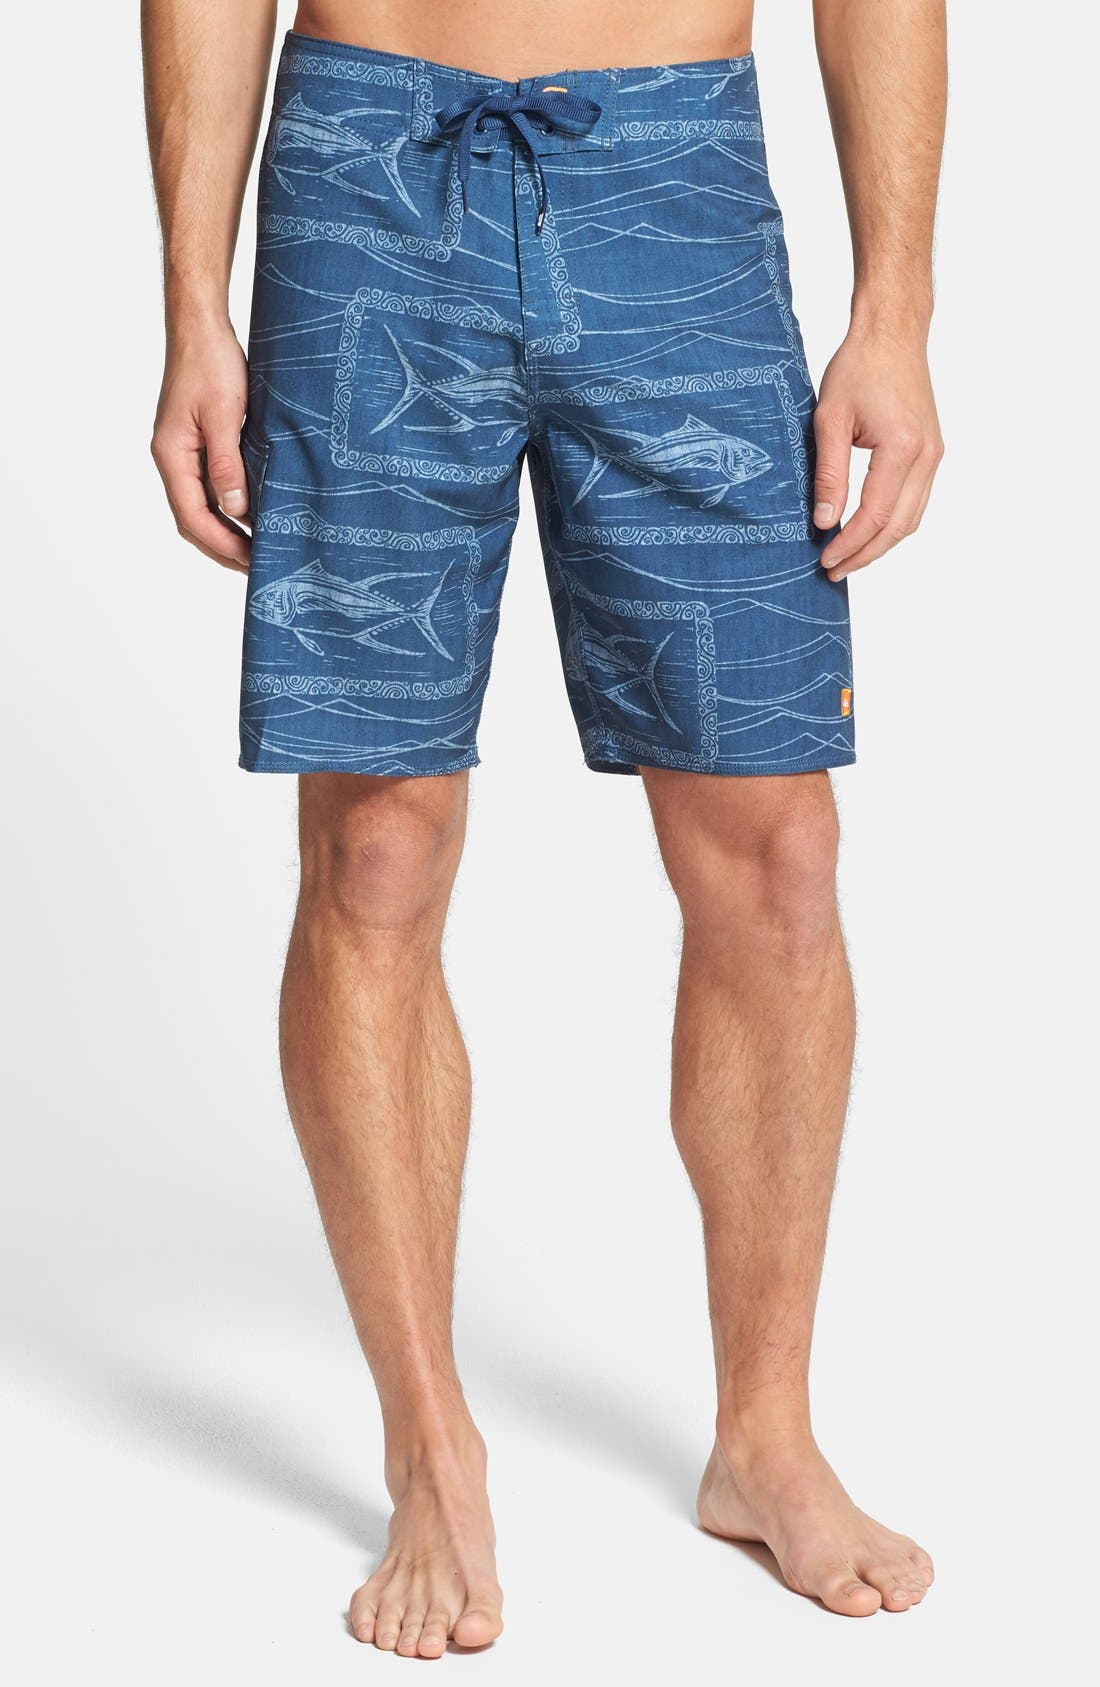 Alternate Image 1 Selected - Quiksilver 'Swell' Stretch Board Shorts